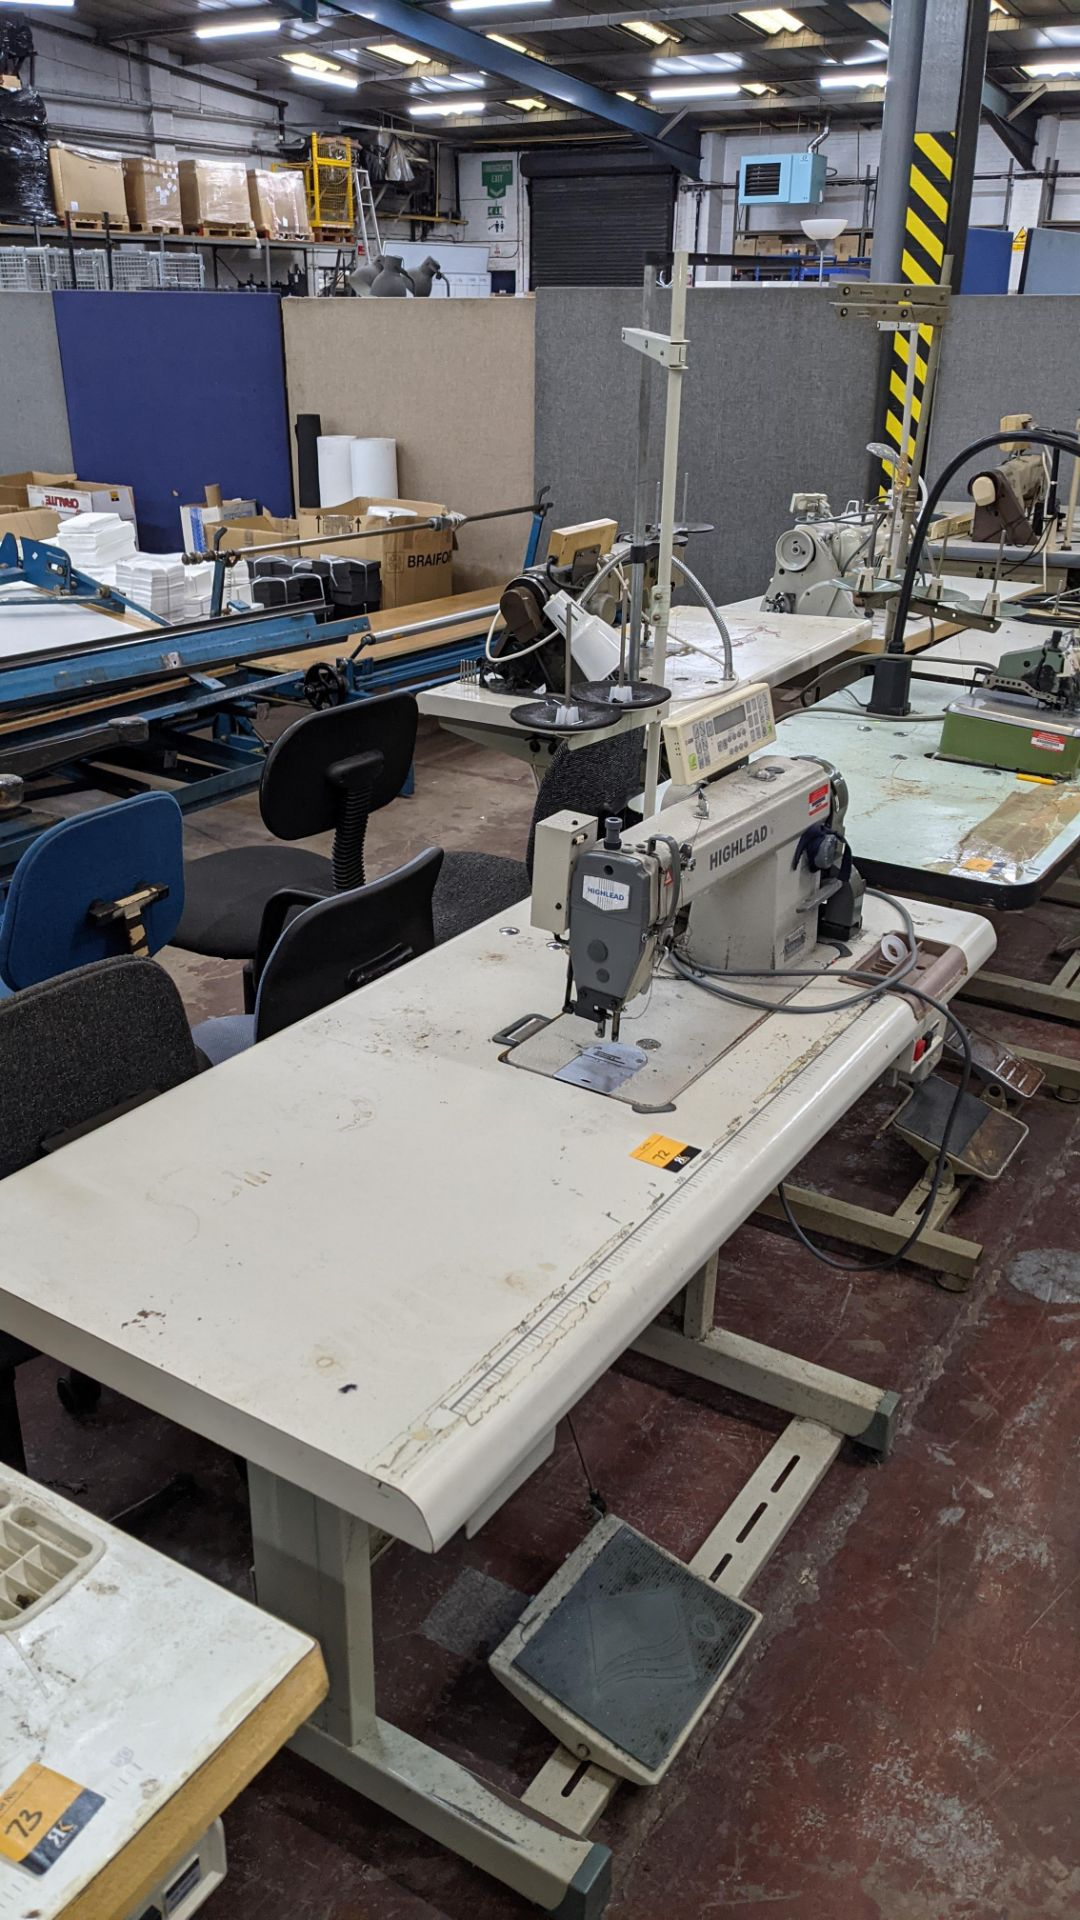 Highlead model GC128-M-D3 sewing machine with model C-60M digital controller - Image 14 of 14